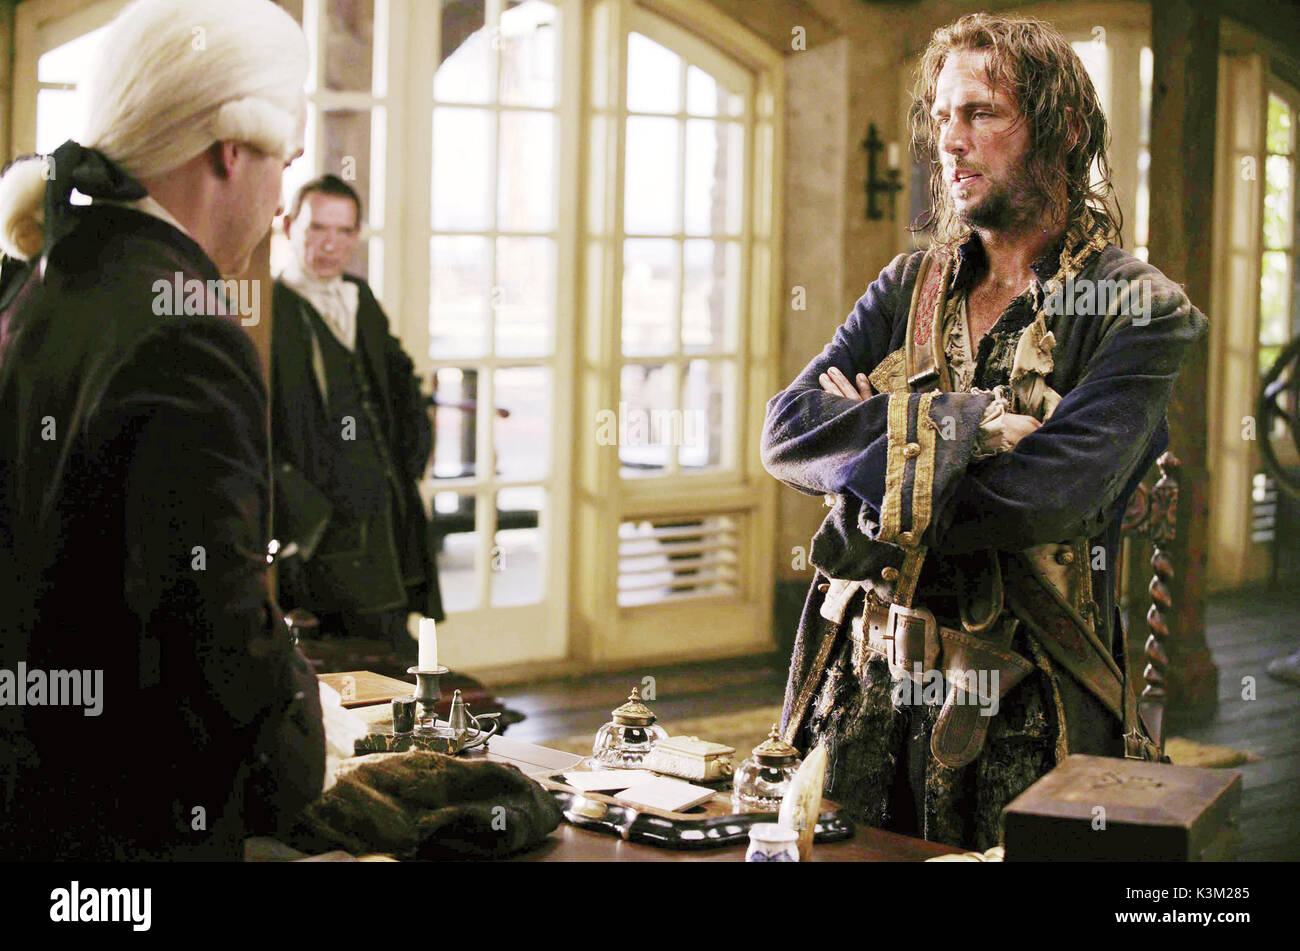 PIRATES OF THE CARIBBEAN: DEAD MAN'S CHEST [US 2006]  JACK DAVENPORT       Date: 2006 - Stock Image